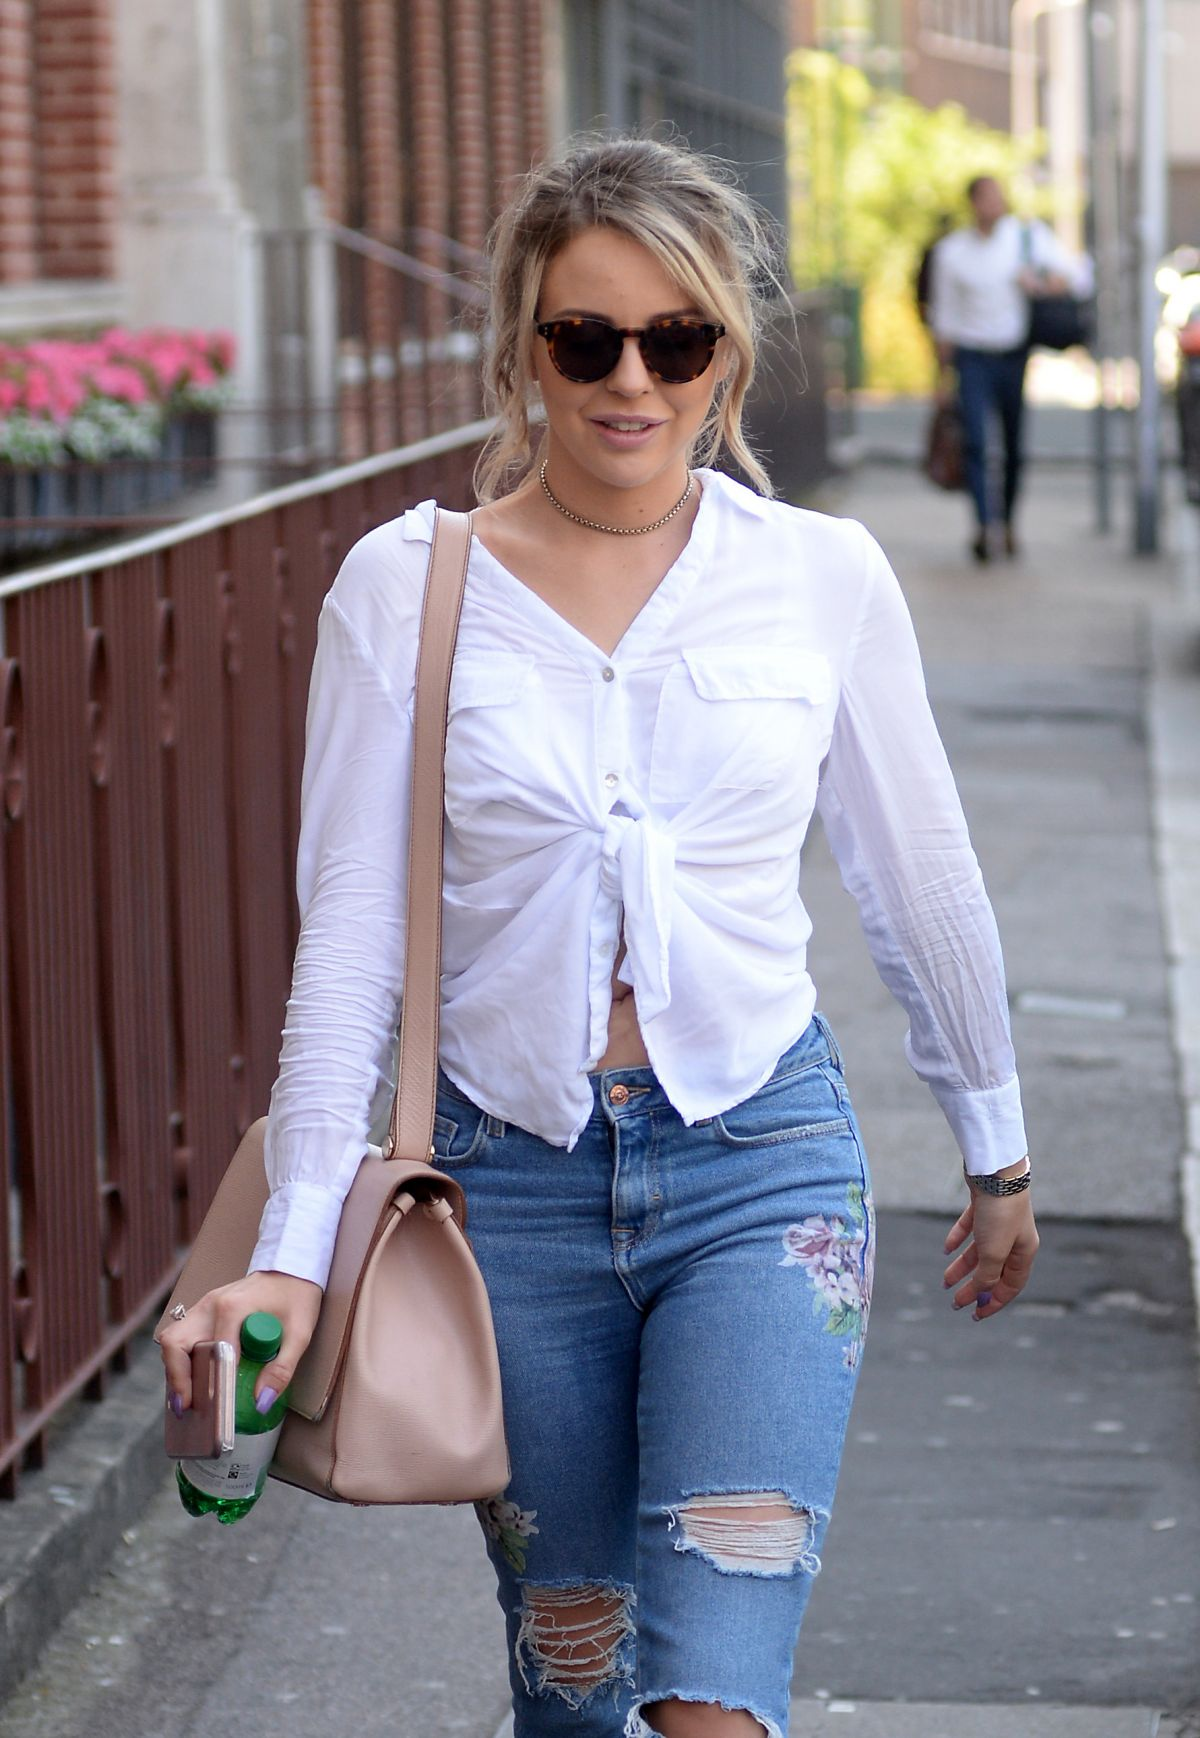 LYDIA BRIGHT in Ripped Jeans Out in London 06/15/2017